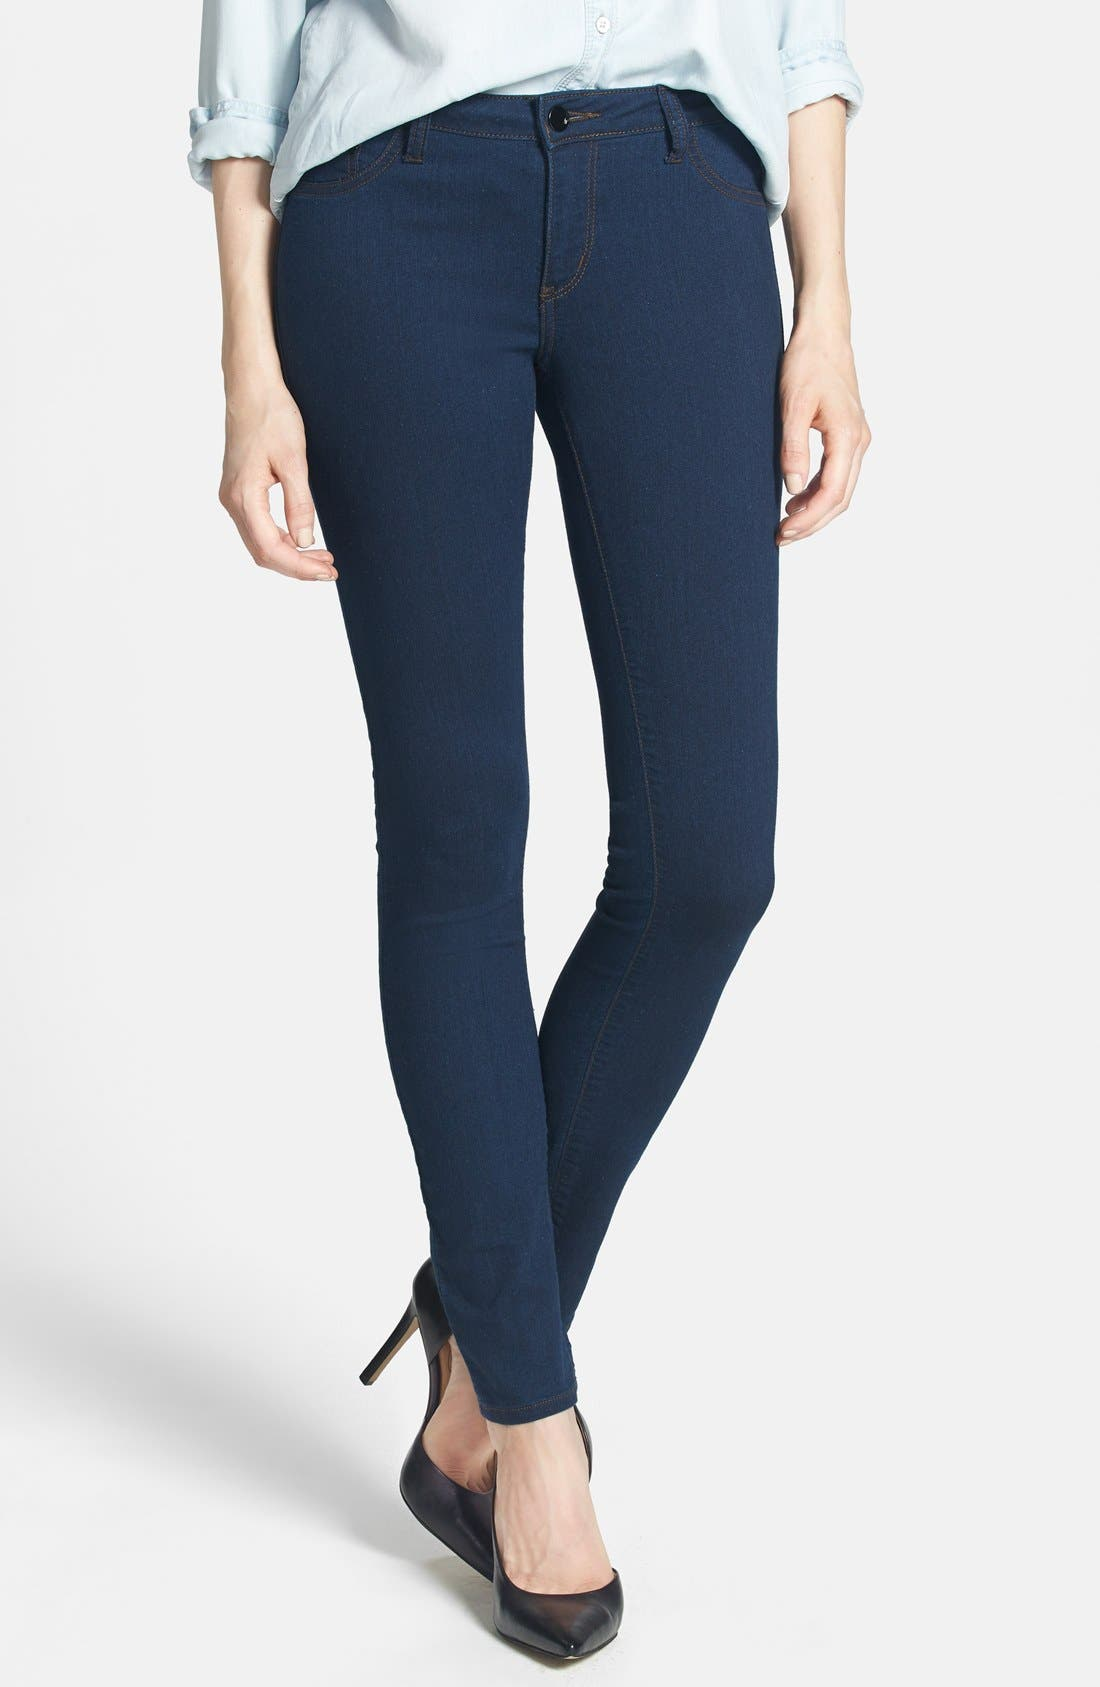 Alternate Image 1 Selected - !iT Collective 'Lola' Stretch Ultra Skinny Jeans (Regular & Petite)